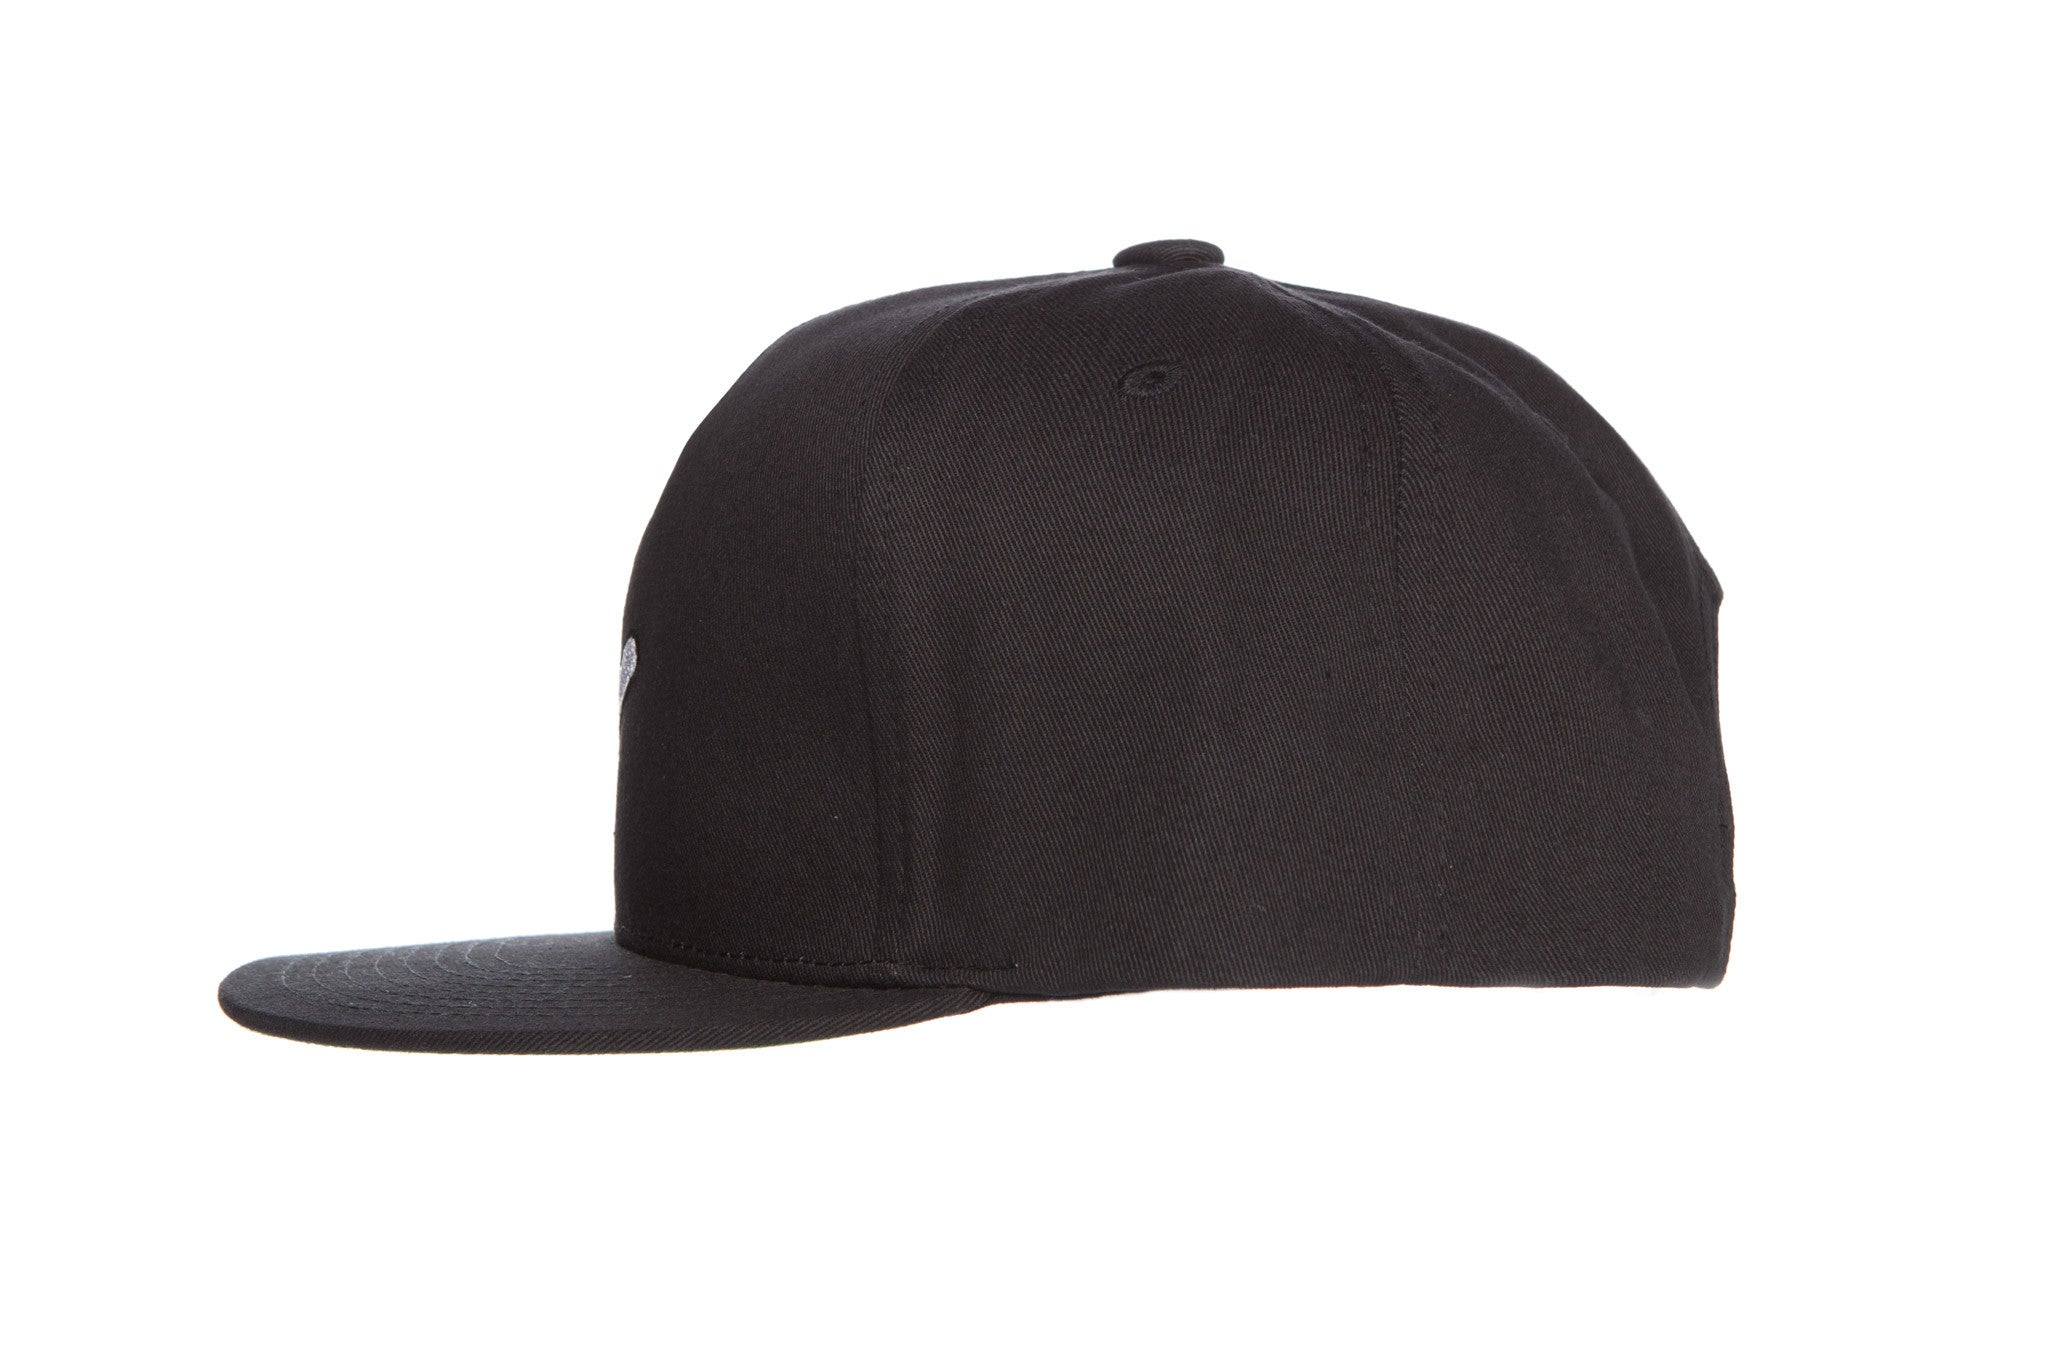 RaceKraft Premium 5 Panel 100% Cotton Twill SnapBack (Black)